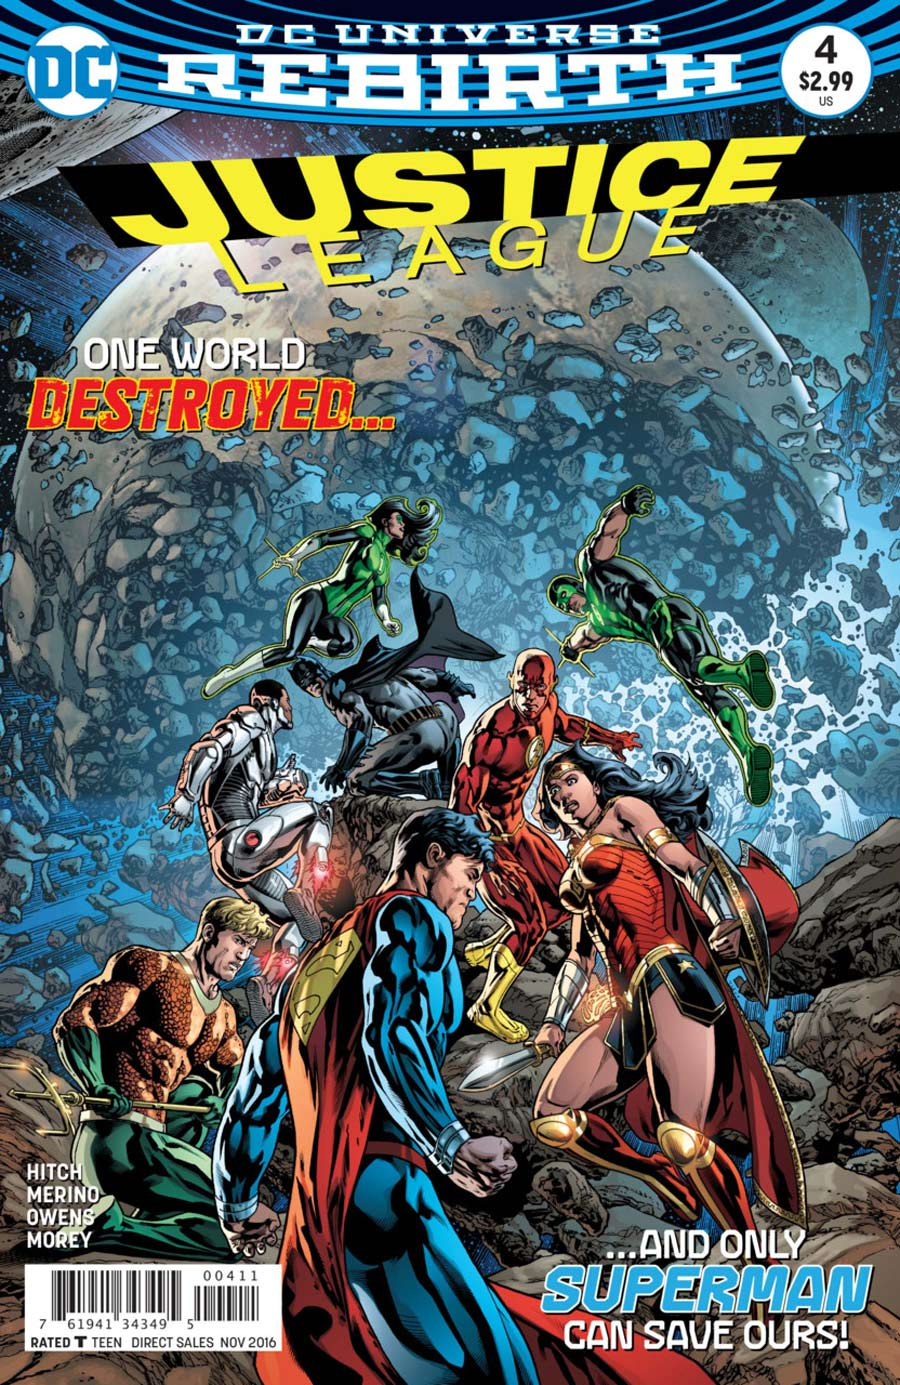 Justice League 4 - 4 - cover #1